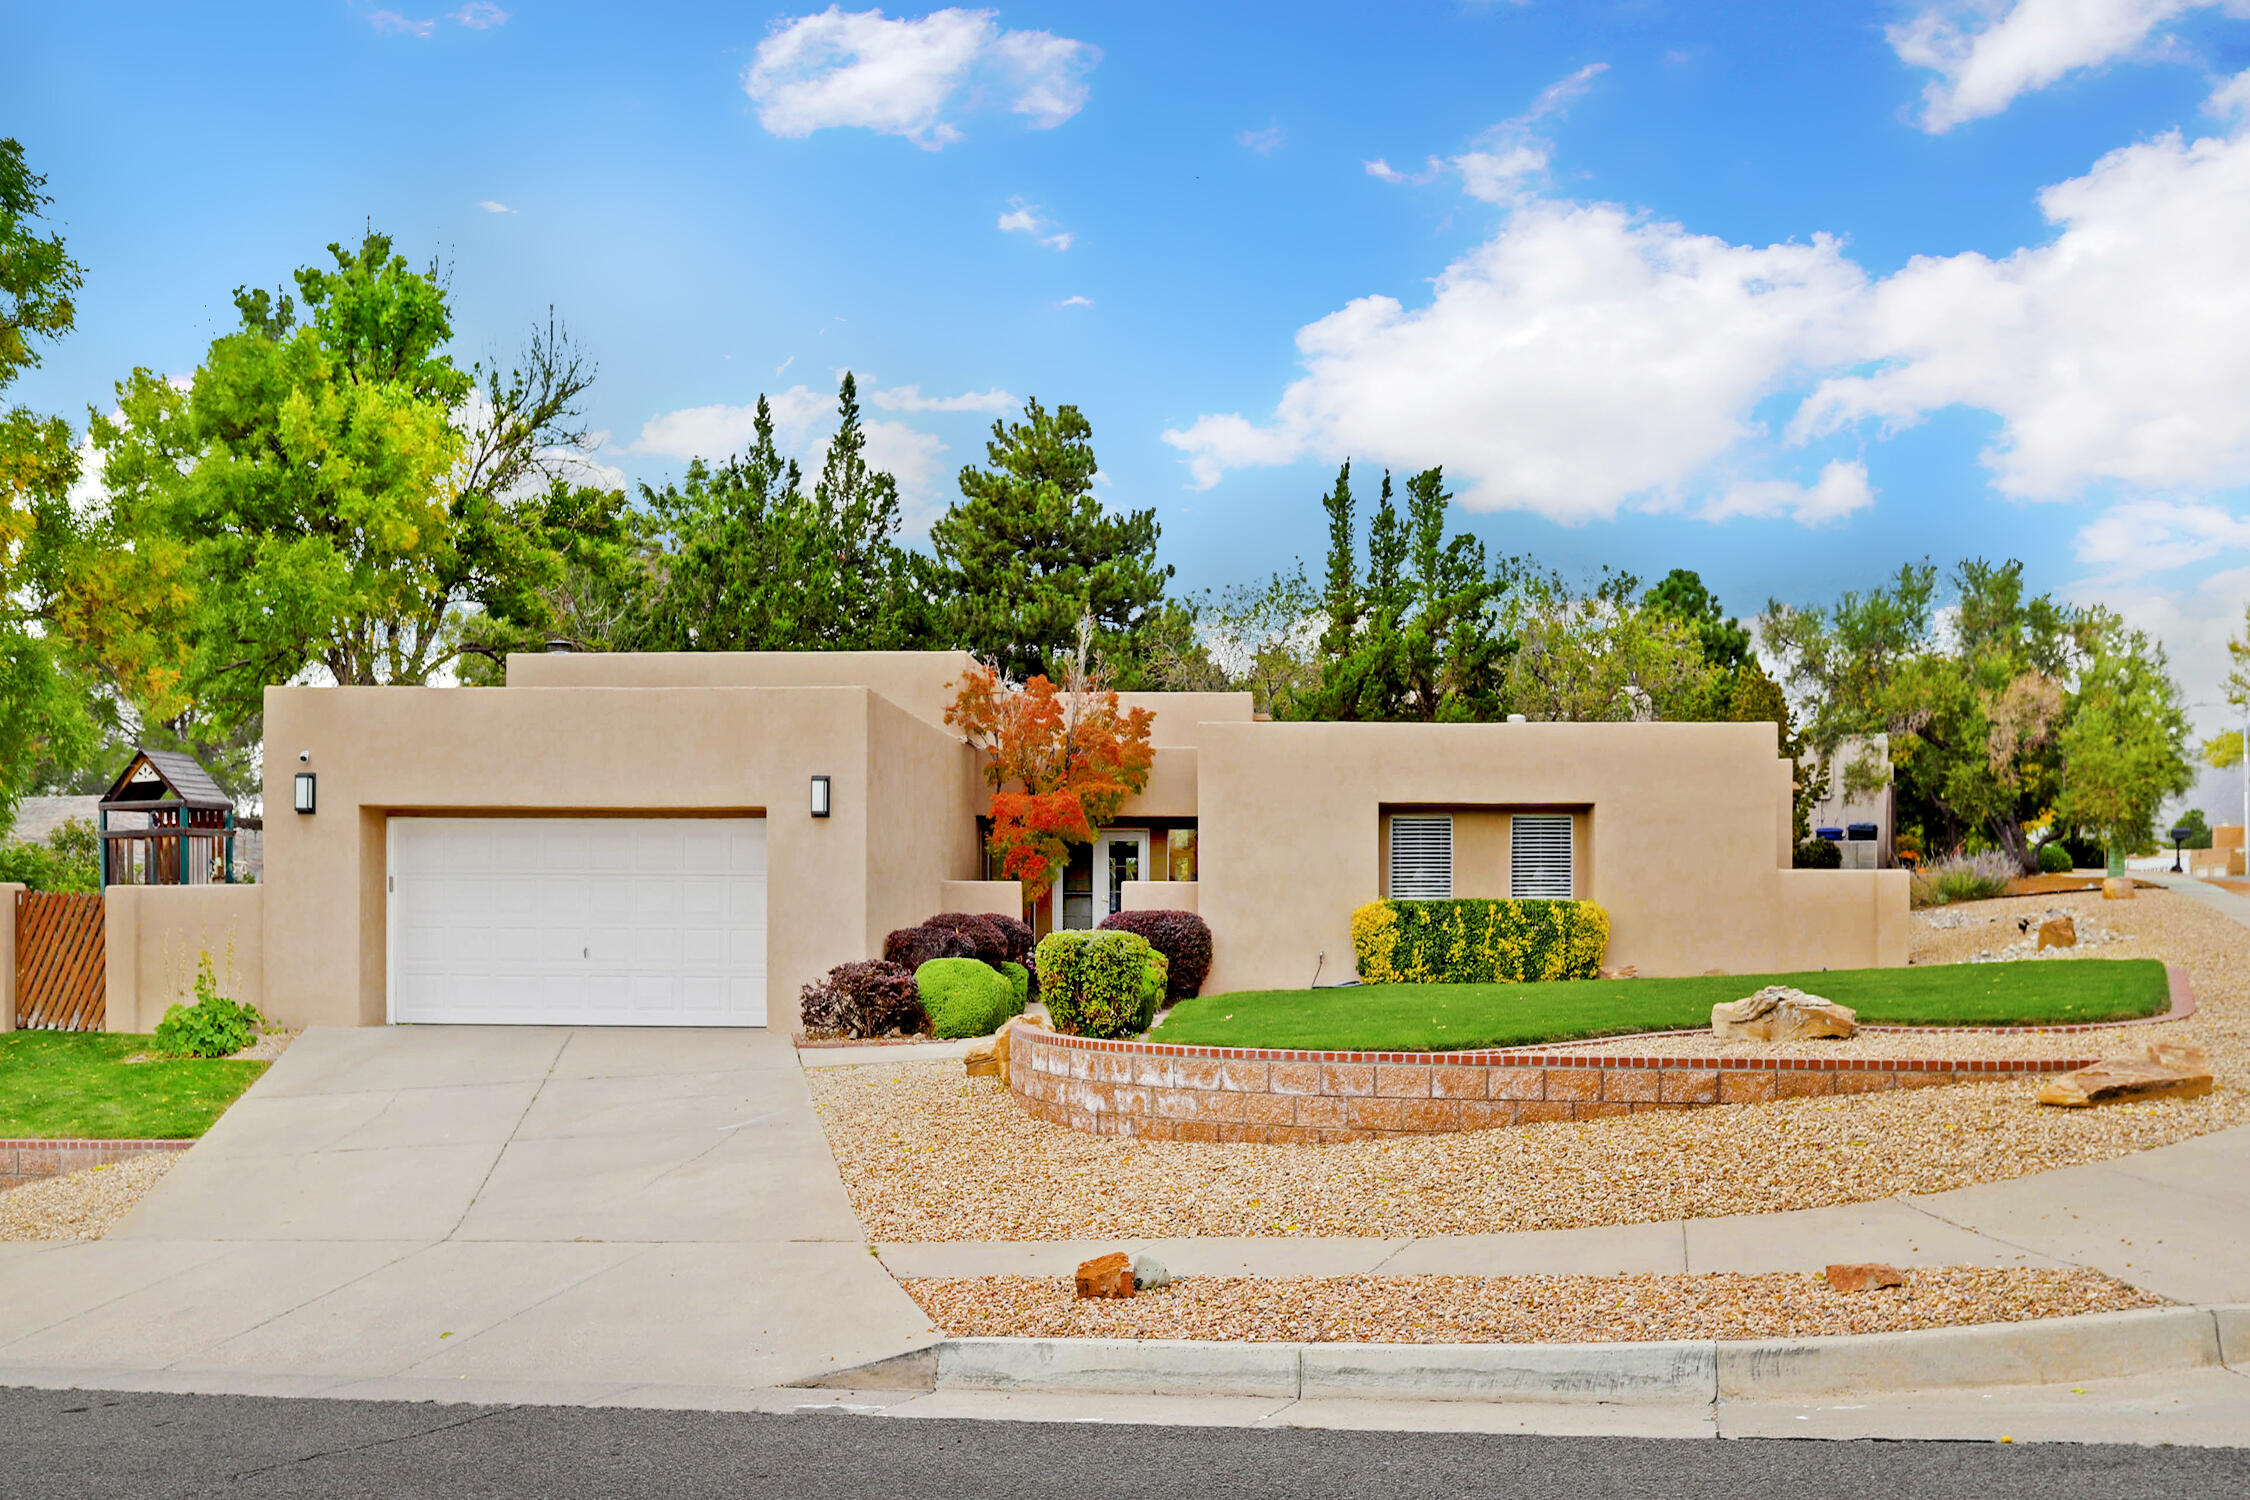 Sophisticated and Stylish Inman in Glenwood Hills! COMPLETE remodel of kitchen and bar area featuring new cabinets, appliances and quartz countertops, acacia hardwood floors and new baseboards were just installed less than a year ago, variance plaster treatment on several walls.  Floor plan features 2 big living spaces, high ceilings with walls of windows, a dining area plus an eat in kitchen, 3 good sized secondary bedrooms and a large owners suite with sitting area and fireplace.  Coveted neighborhood with easy access to hiking, biking trails and a nearby park. beautifully landscaped yards provide a perfect canvas for relaxing and entertaining. DON'T MISS all the extra space on the side yard! in the back.  Being so close to Tramway makes it a breeze to traverse the city!